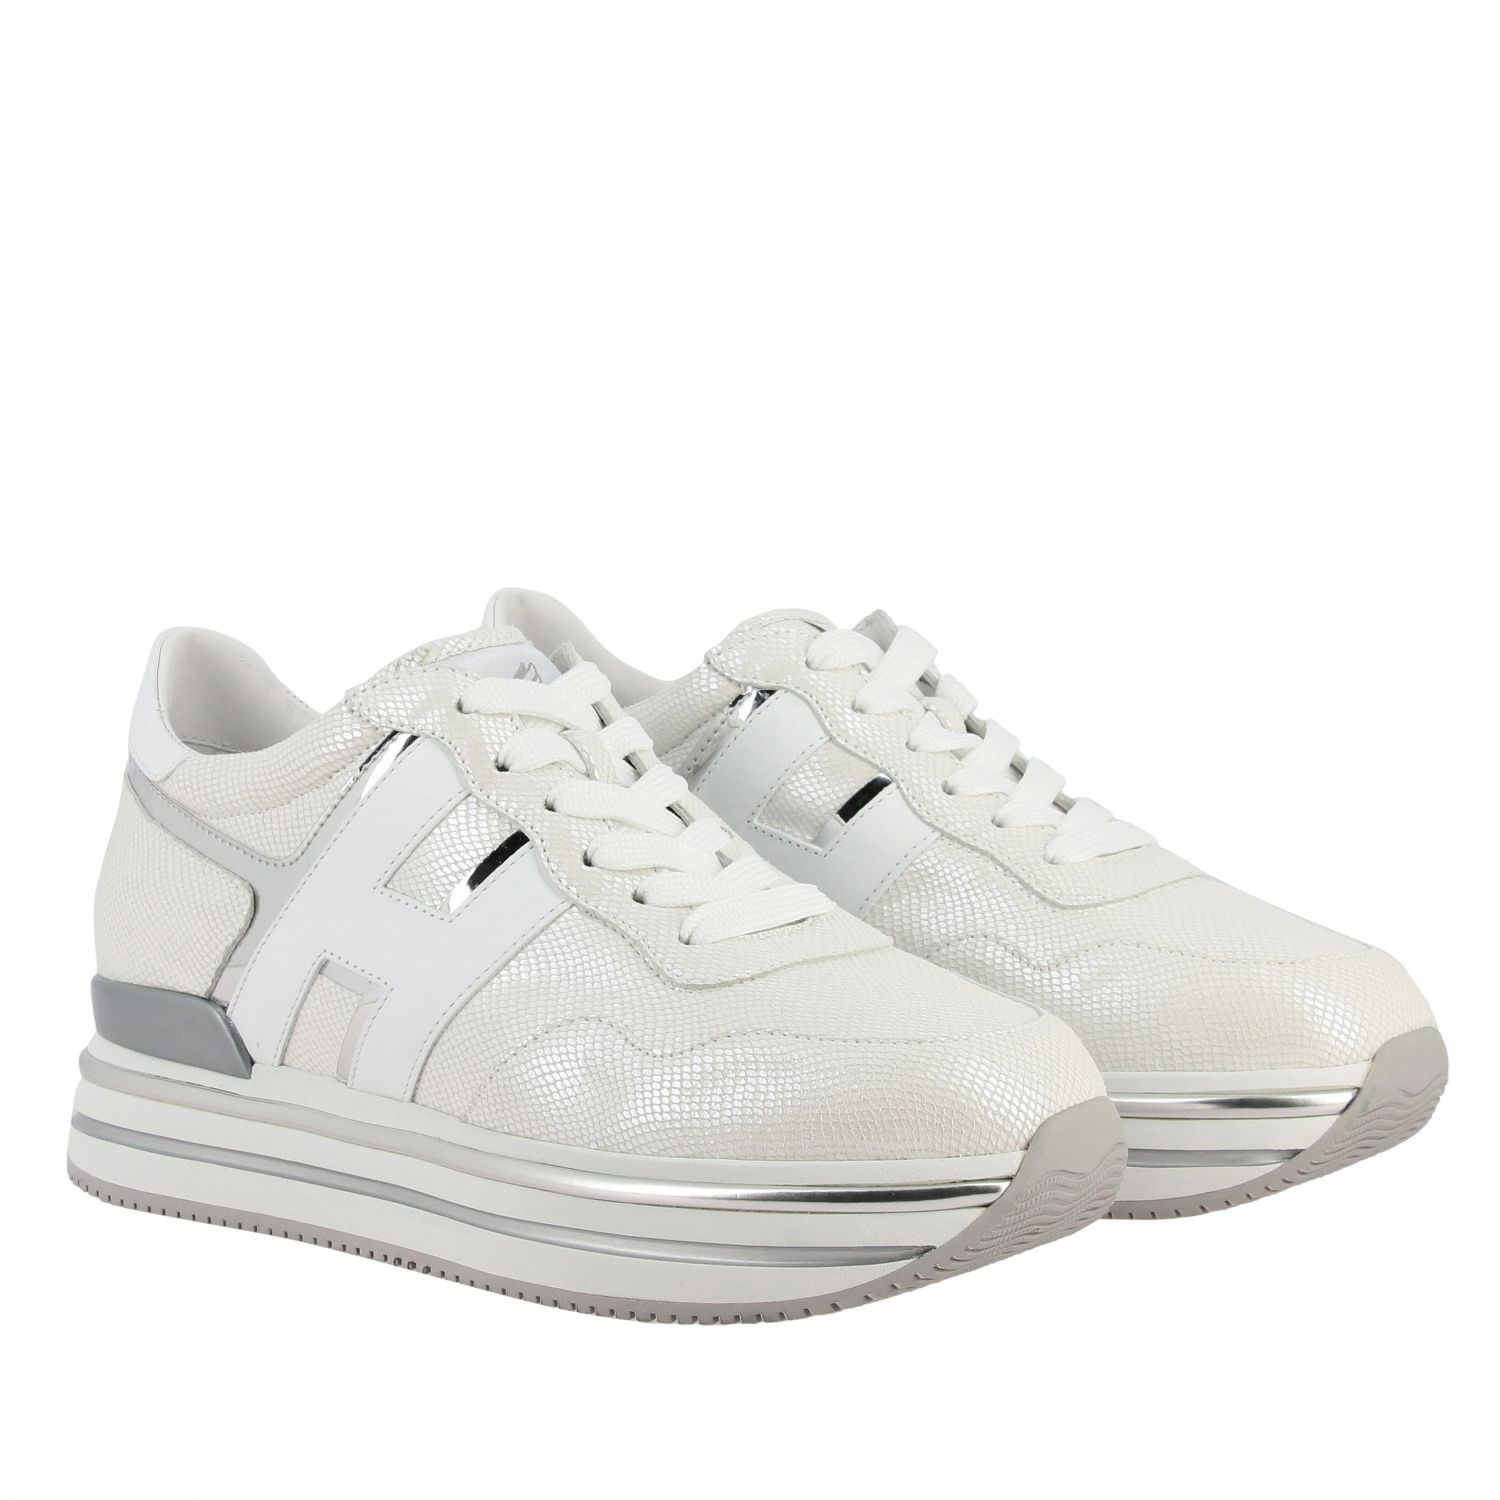 Hogan 468 midi platform sneakers in leather with big H and glitter piping white 2